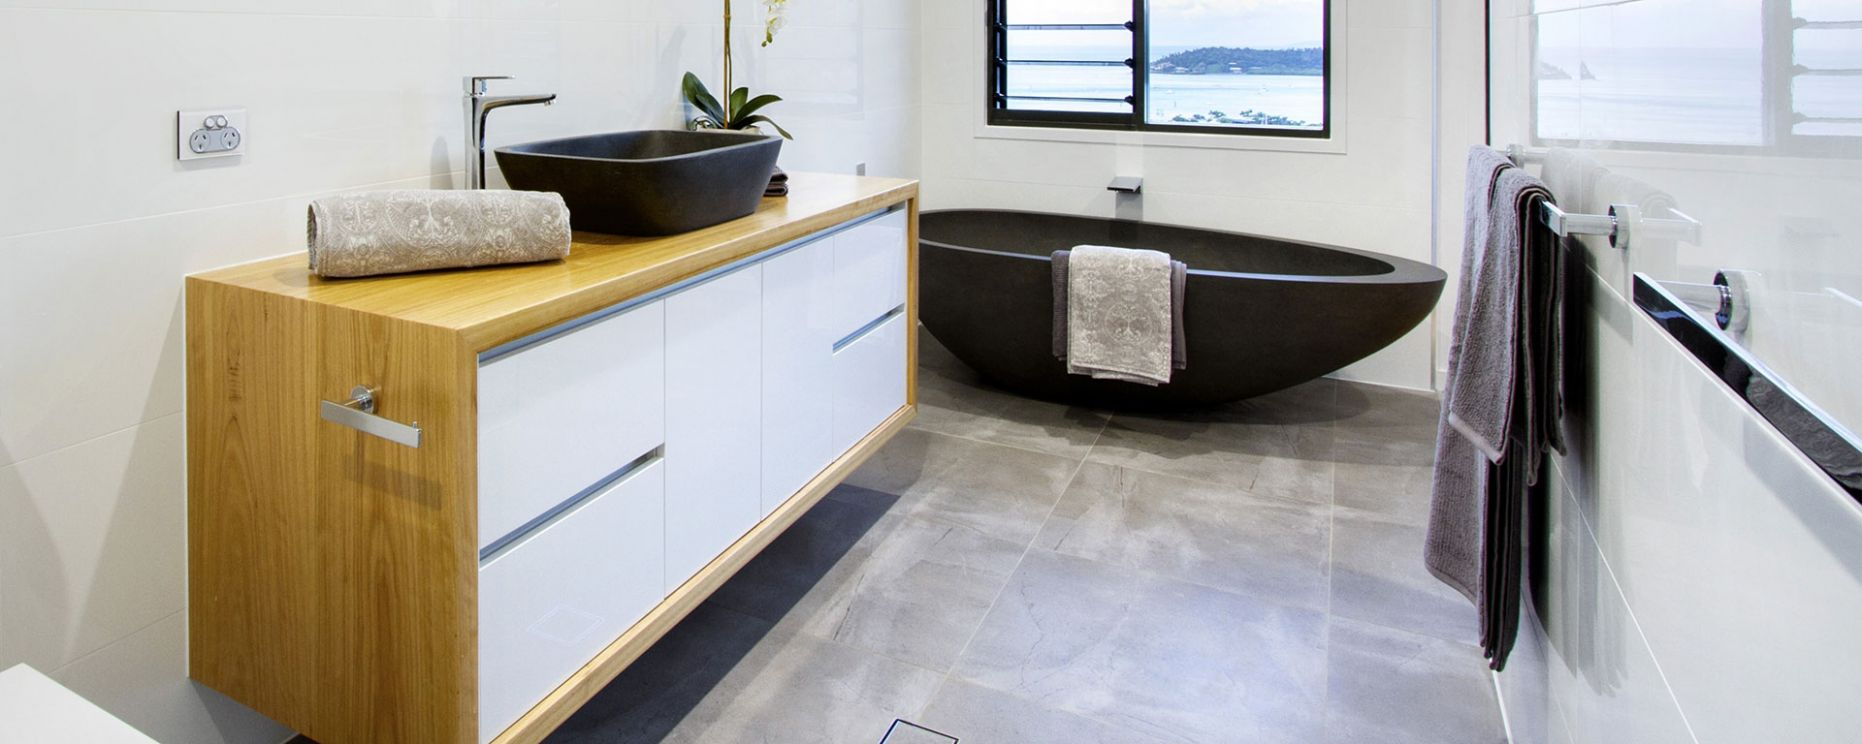 Natural Stone Bath Worx | Home Ideas Centre - bathroom ideas adelaide